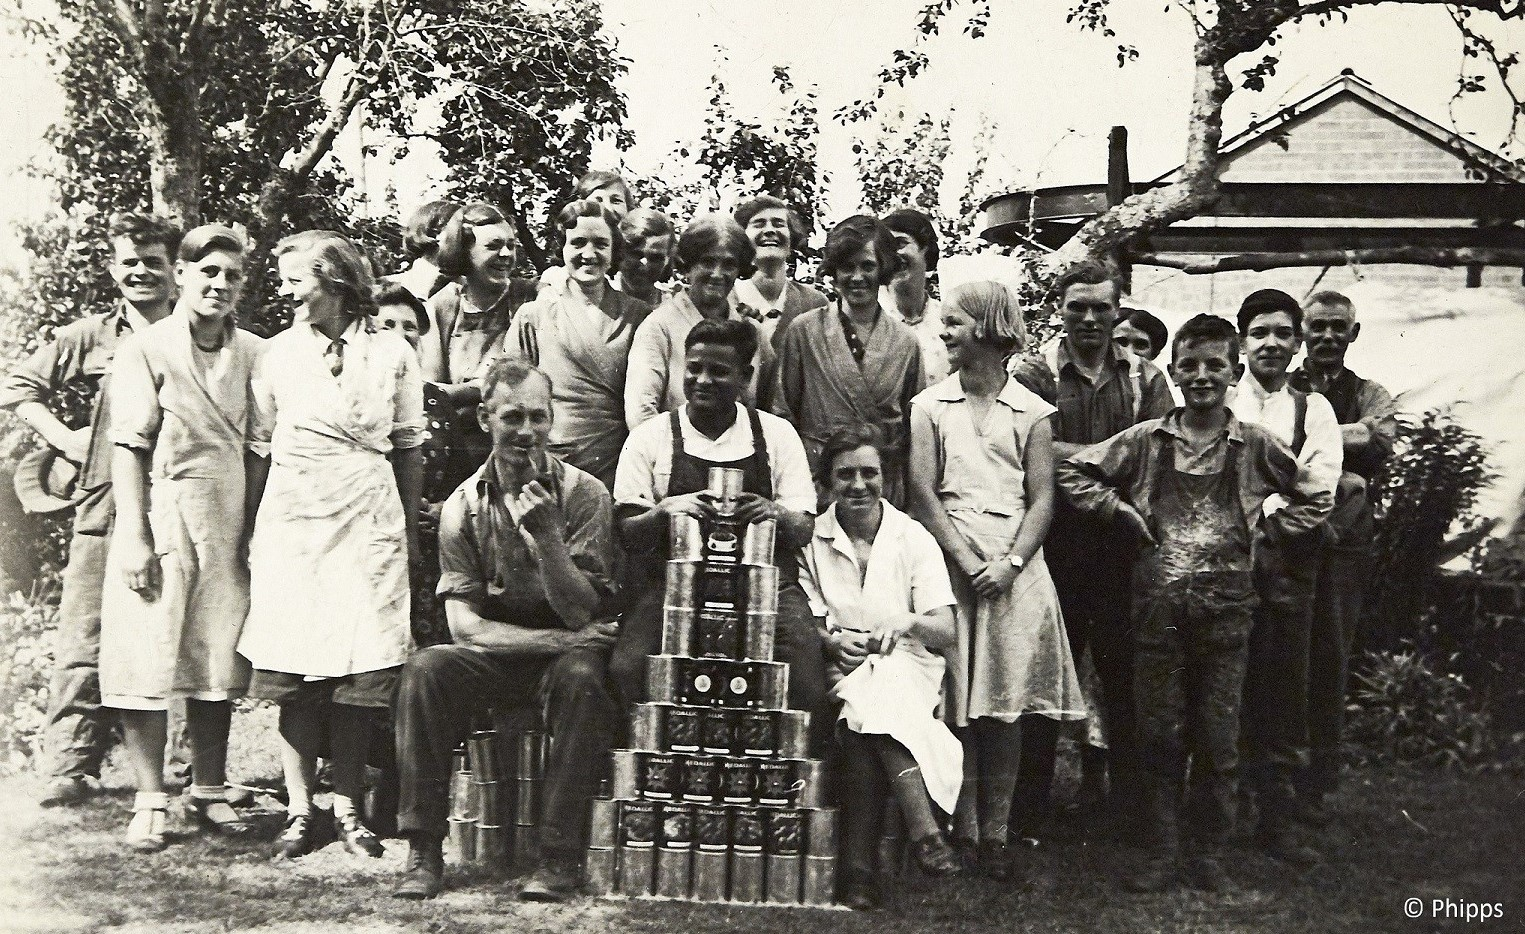 Group of workers with display of canned goods - informal, relaxed shot